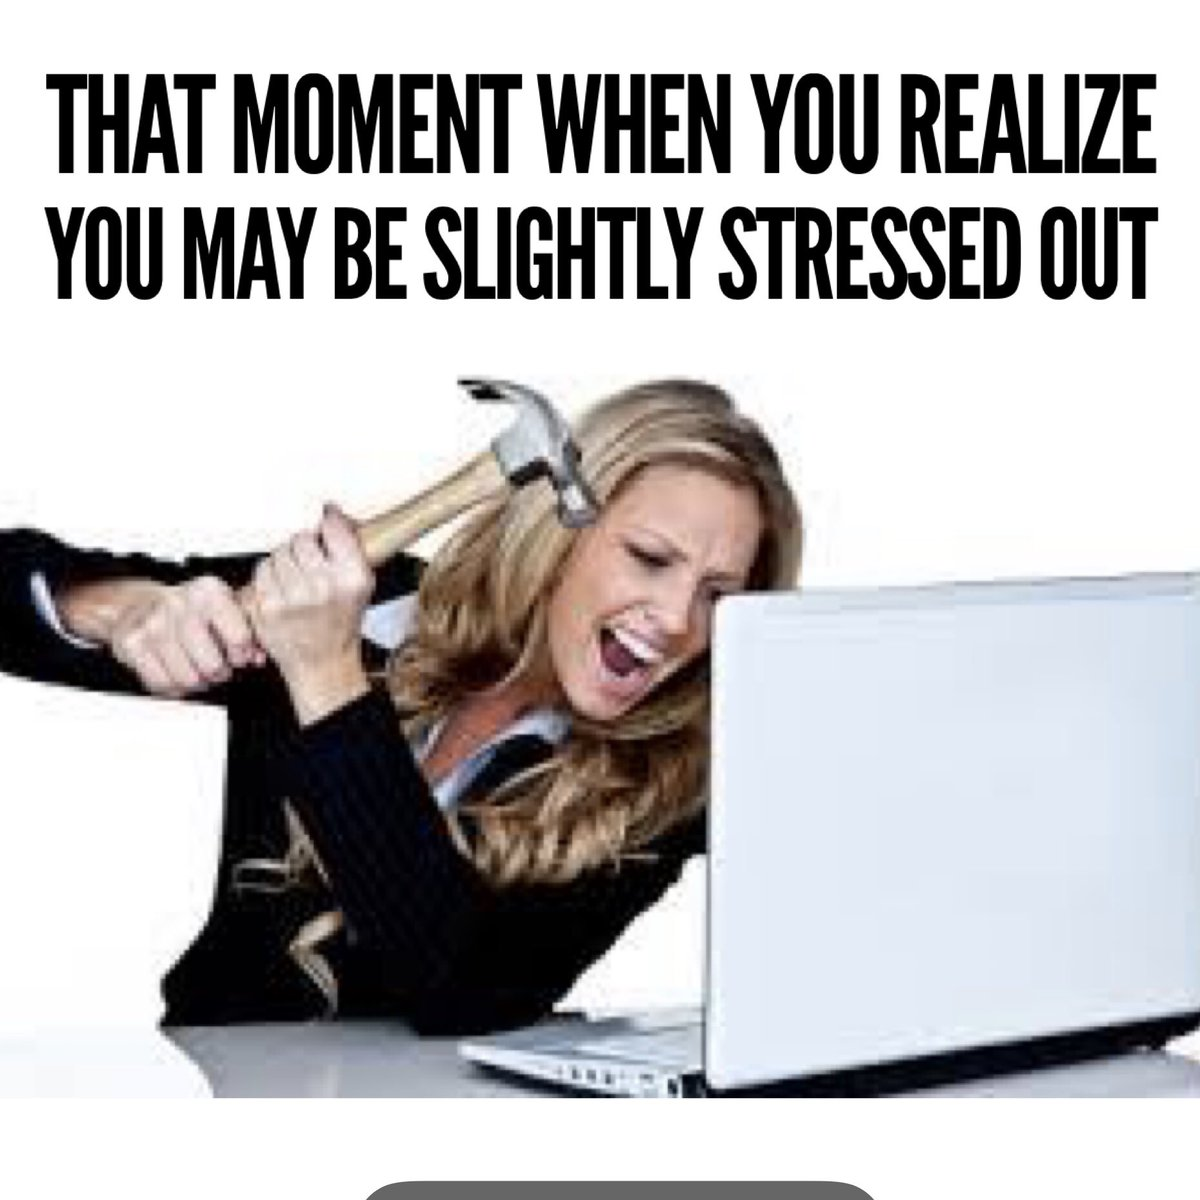 Ask yourself, is this Normal?  https://t.co/5gmMhgR0PU #stressmanagement #dangersofstress #stresskills #wednesdaythoughts #Anxiety #Brain #change #Feel